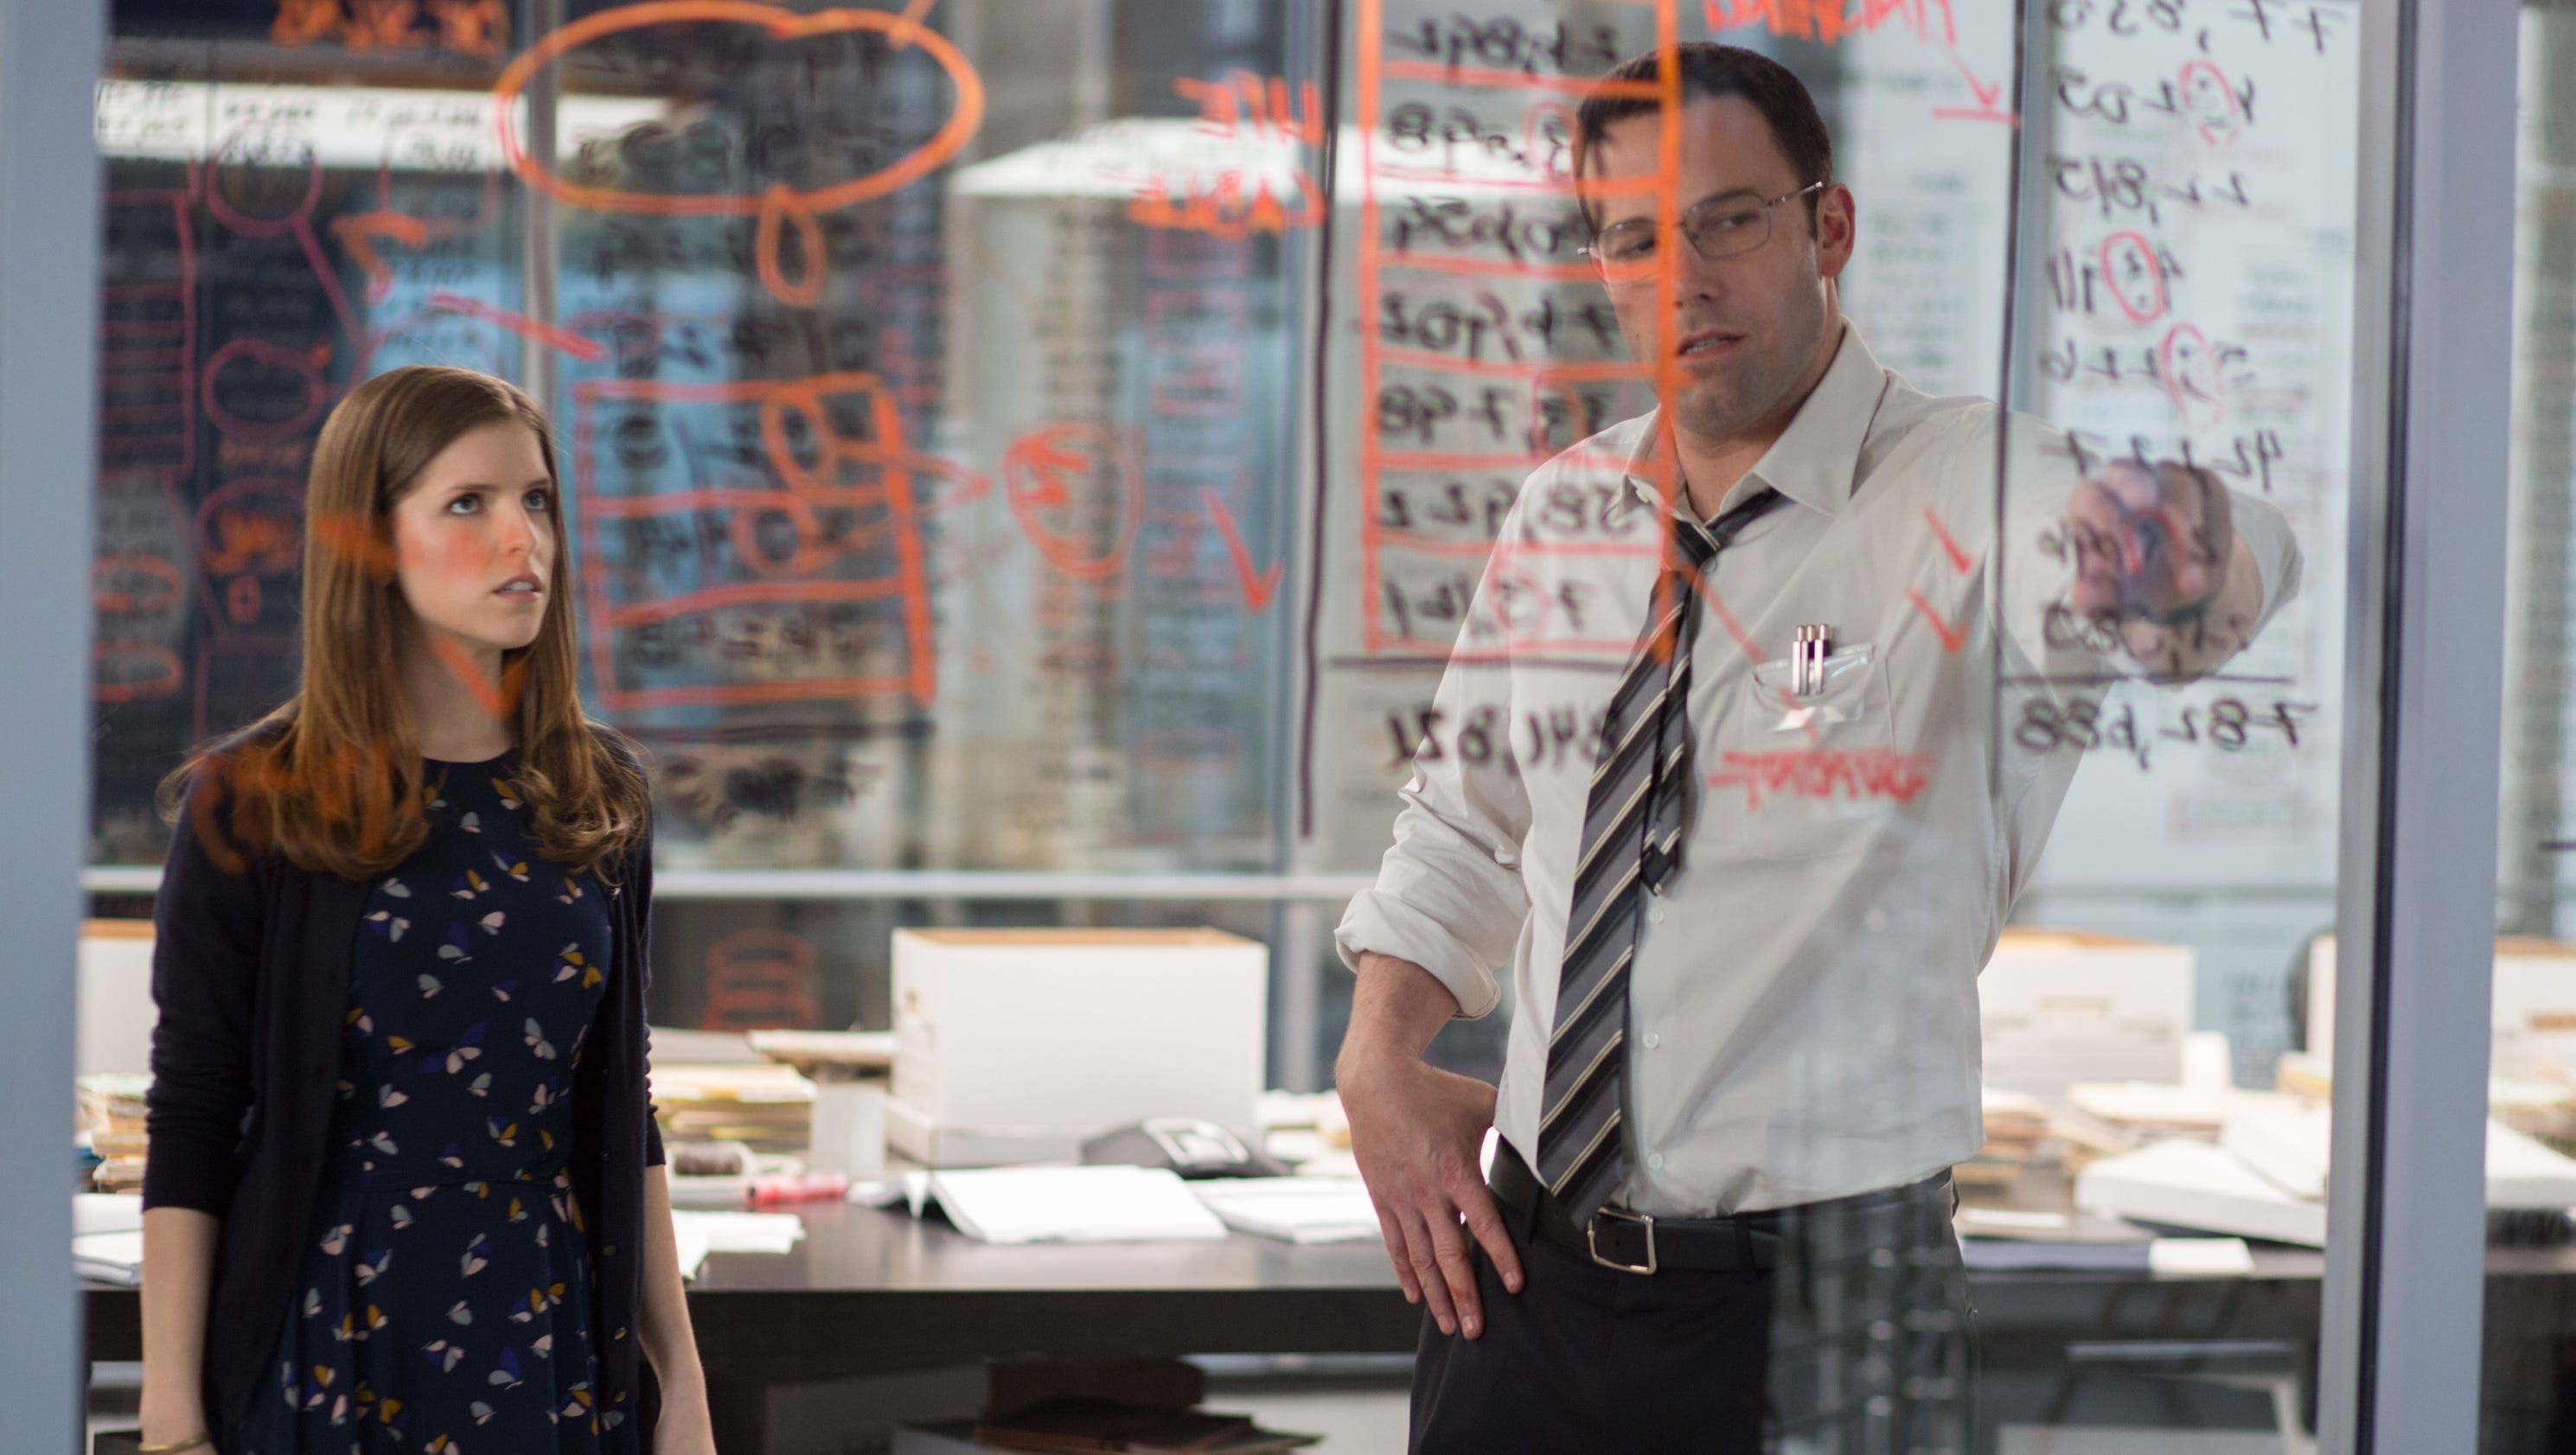 Pairing Ben Affleck, Anna Kendrick is the right equation for 'Accountant' - USA TODAY